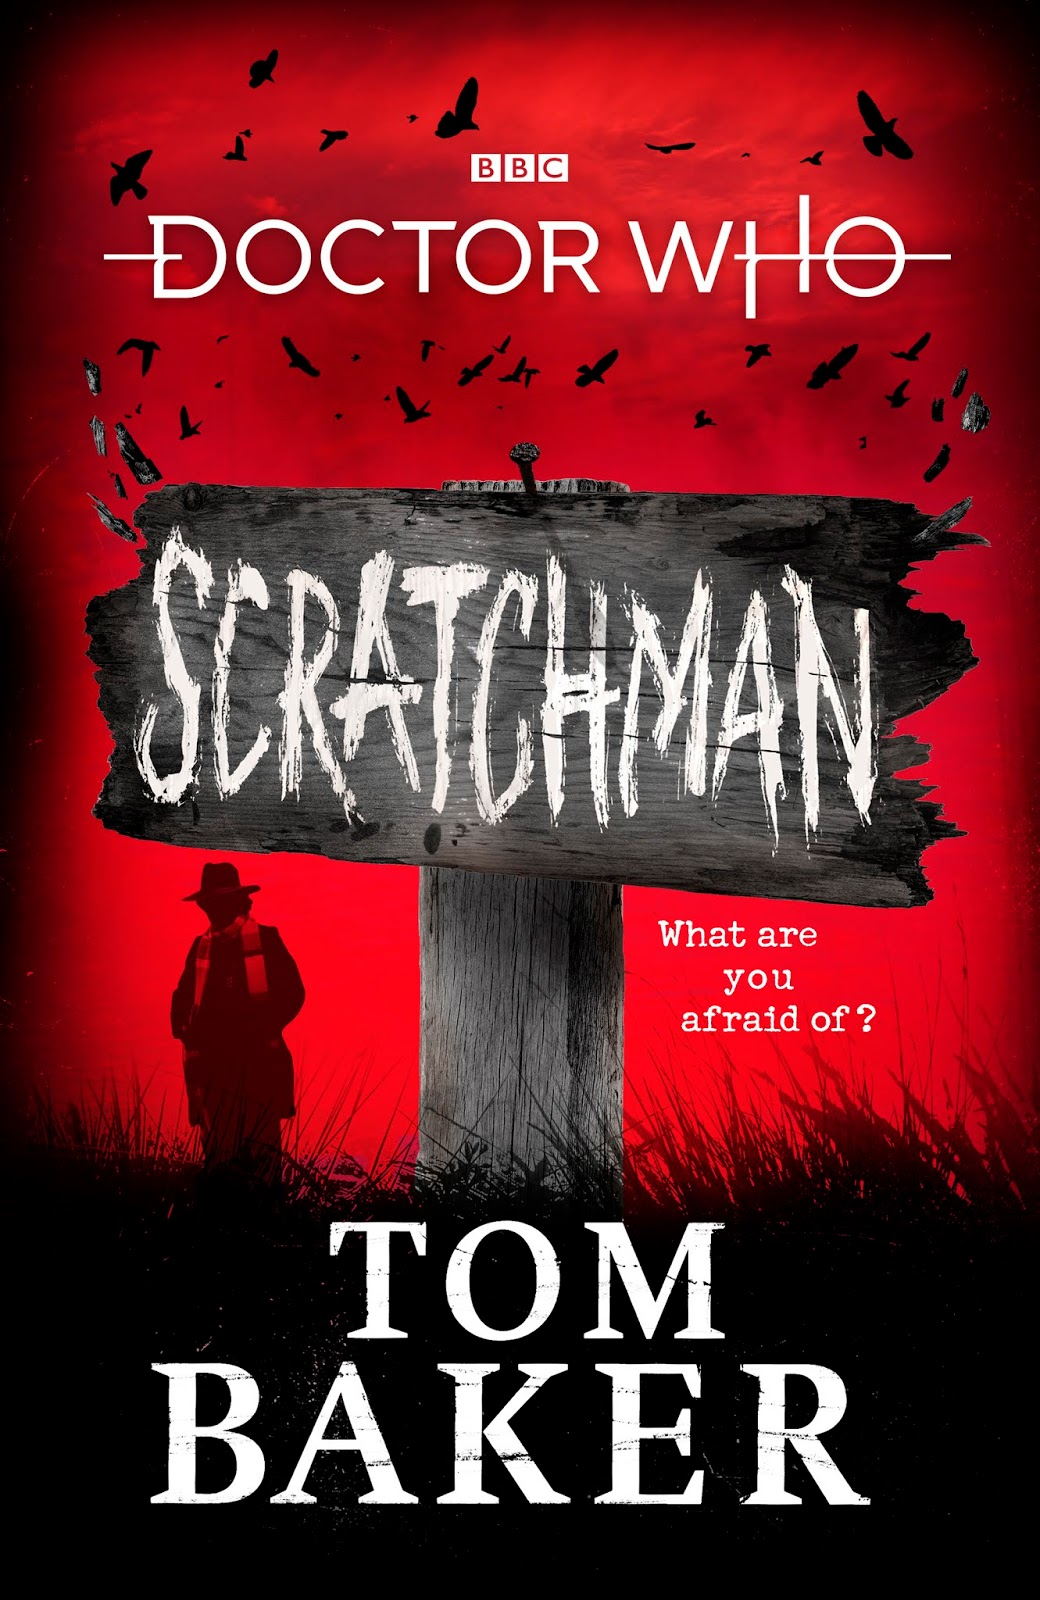 christmas gift idea doctor who scratchman a novel by tom baker